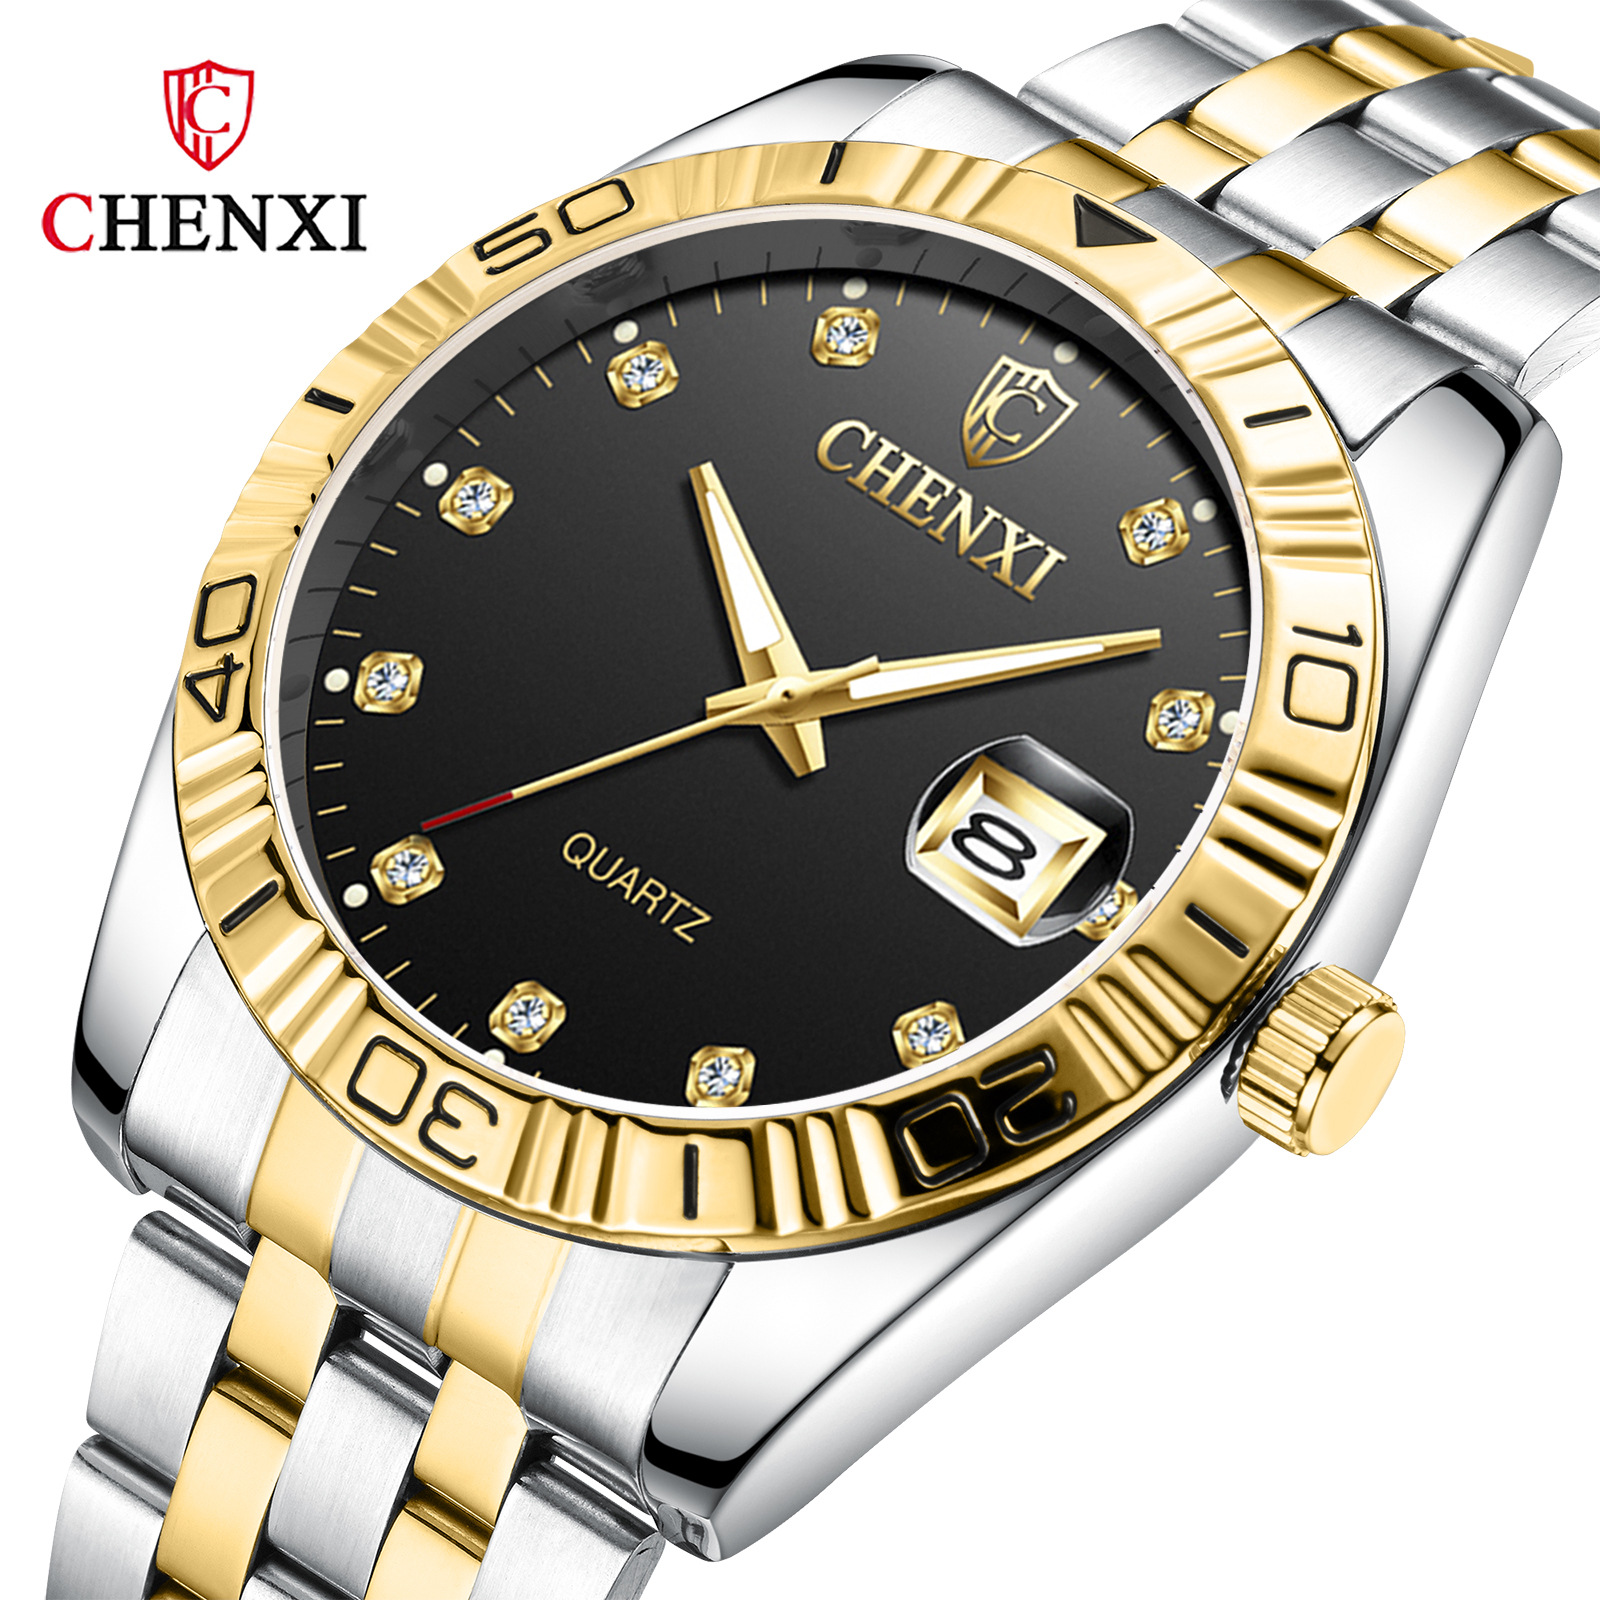 2019 New Top Brand Couple Watches Golden Full Stainless Steel Luxury Quartz Watch Men Clock Ladies Wristwatches Relogios Casal